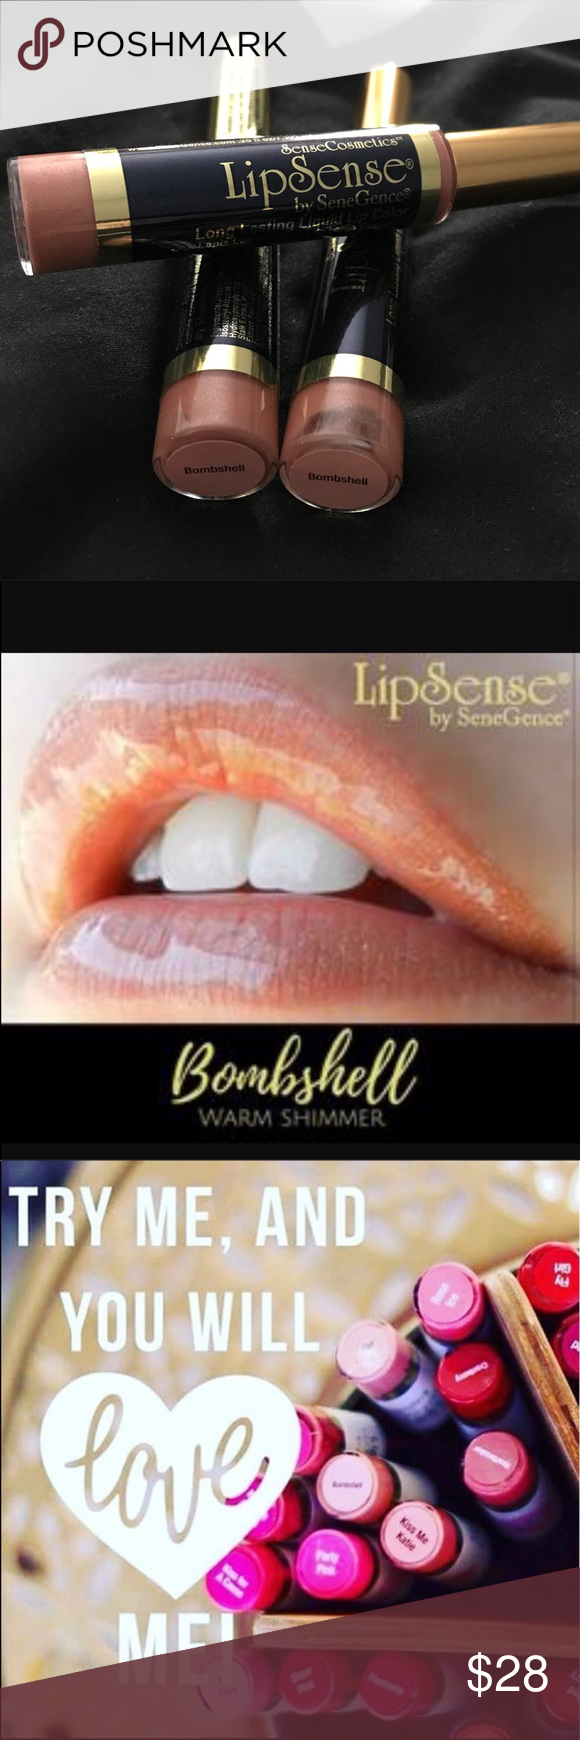 Bombshell LipSense Bombshell is a beautiful frost color. Lasts up to 18 hours. Smudgeproof. Kiss Proof!! Please fill out my Commitment form (https://goo.gl/forms/Y5E4knS0pJ8bnsNm2) before ordering to guarantee you grabbed your color of choice before someone else!!  let me know if you need any further information!!  💋If you're new to LipSense, please see my listing for the Starter Collection 💋 Makeup